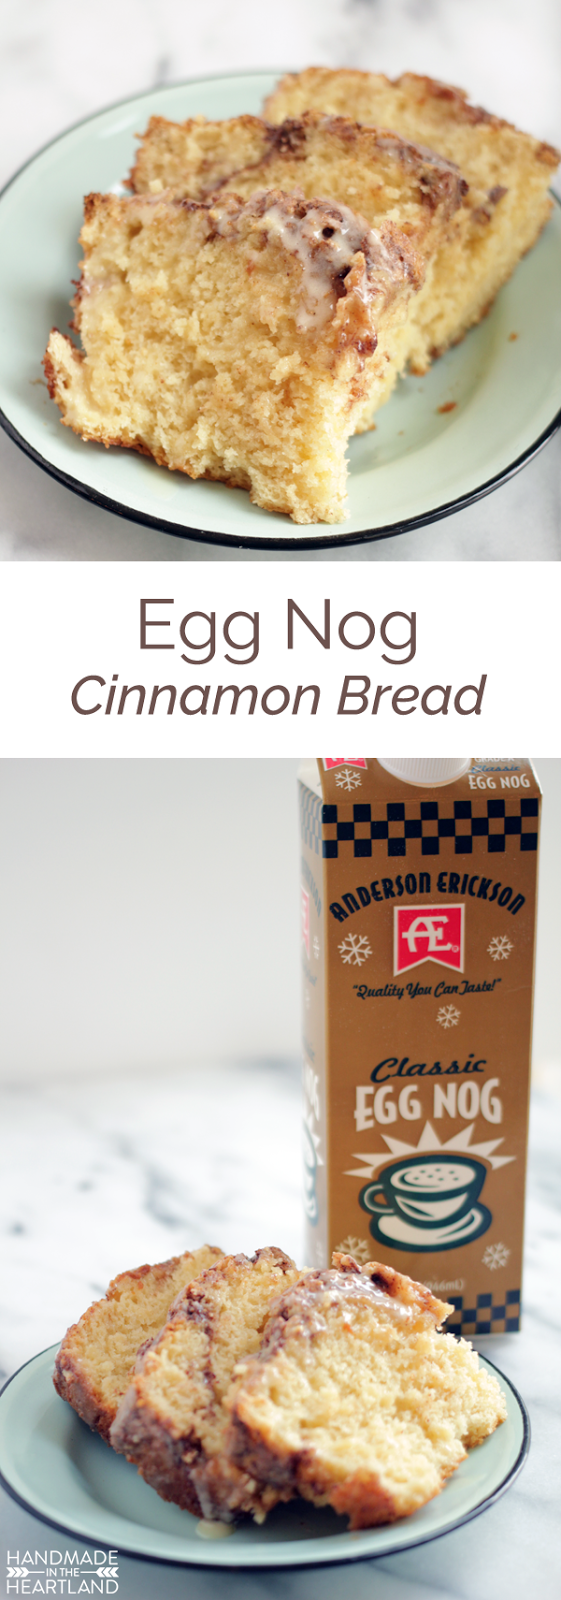 The perfect recipe for Christmas morning! Egg Nog Cinnamon Bread